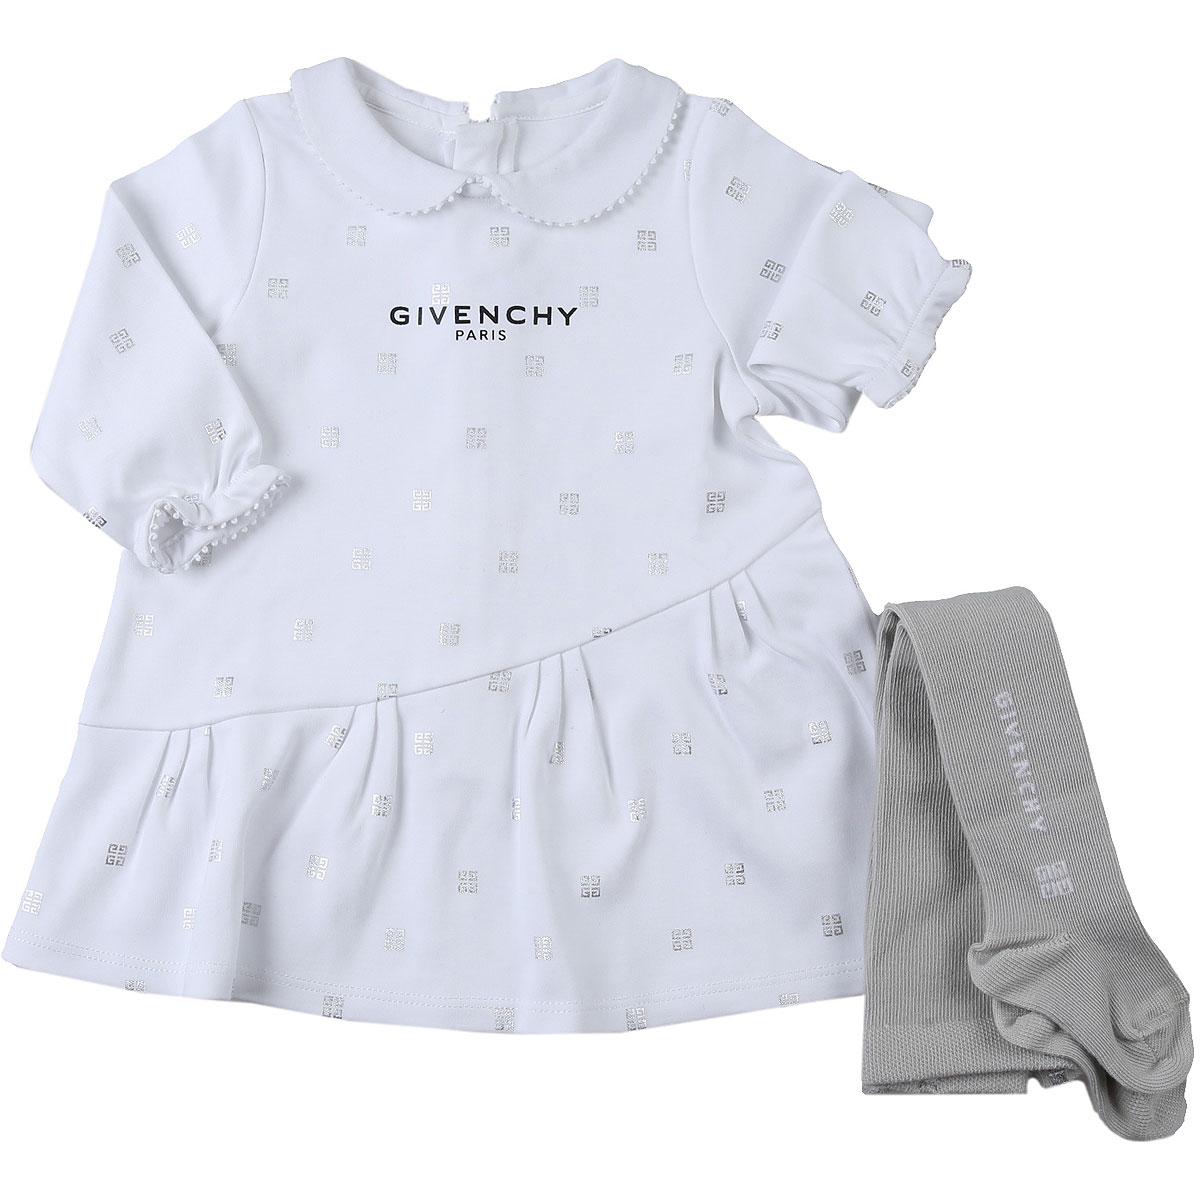 Givenchy Baby Sets for Girls On Sale, White, Cotton, 2019, 12M 3M 6M 9M